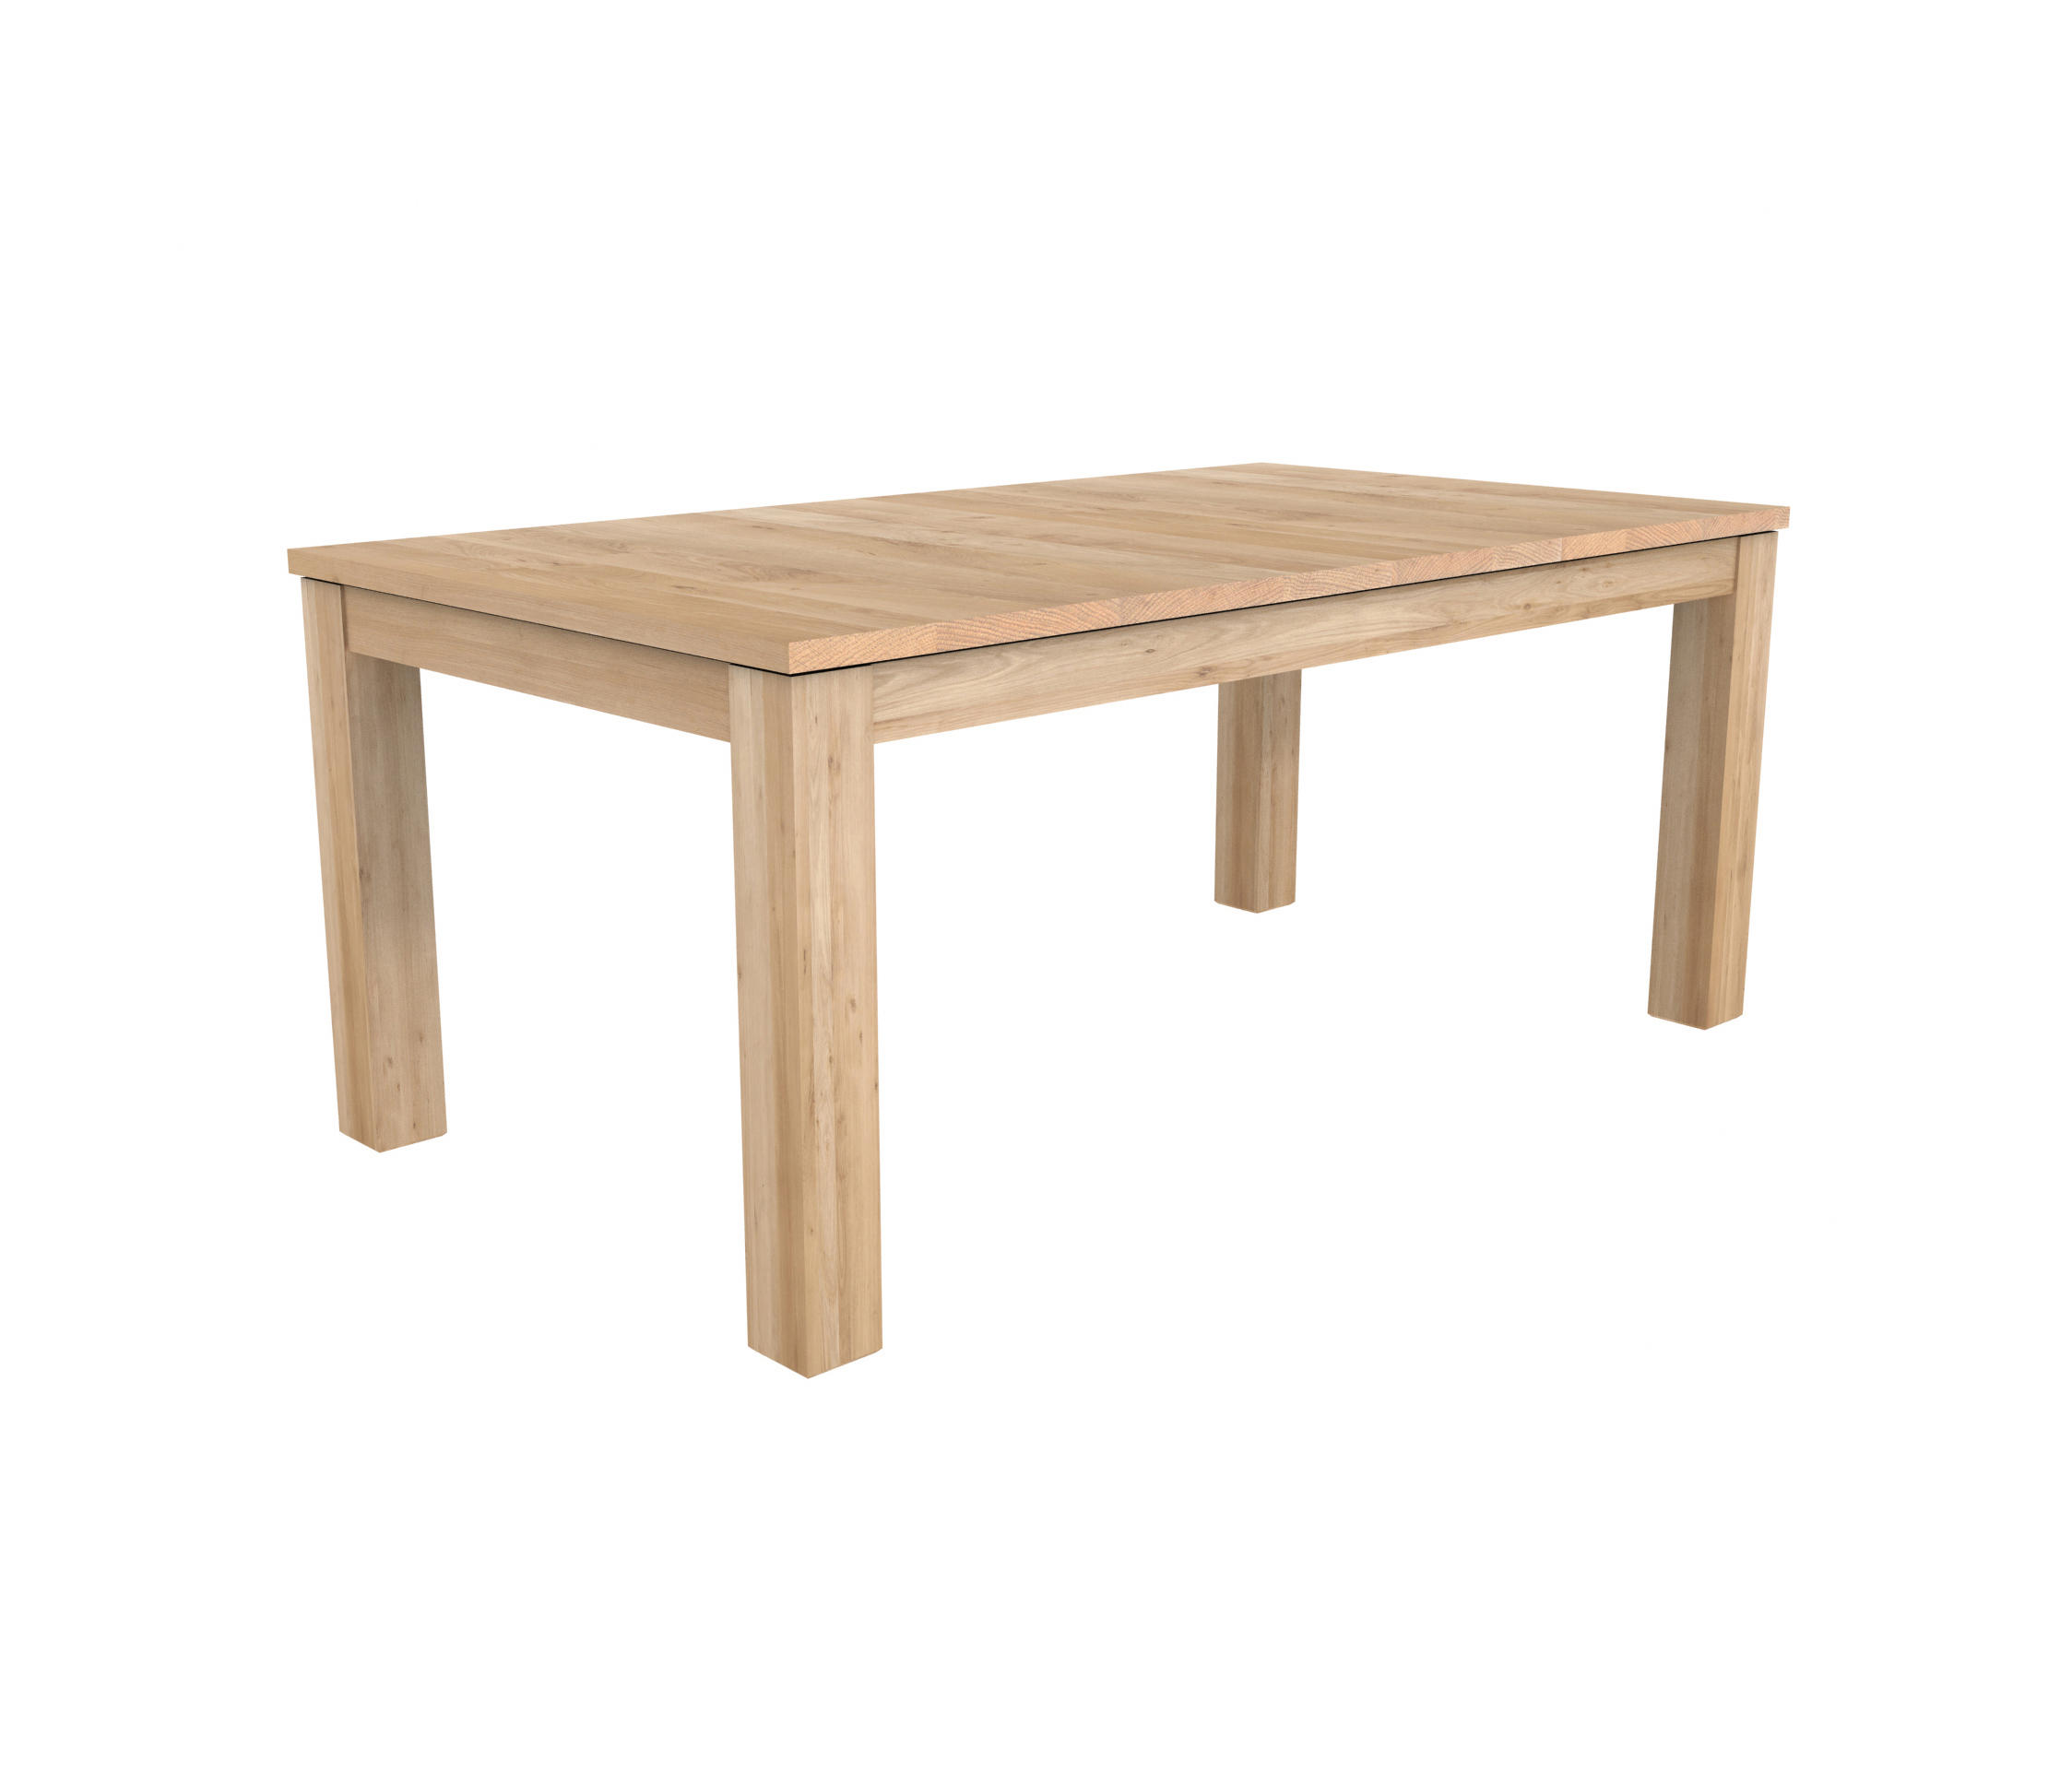 OAK STRETCH EXTENDABLE DINING TABLE Restaurant tables from